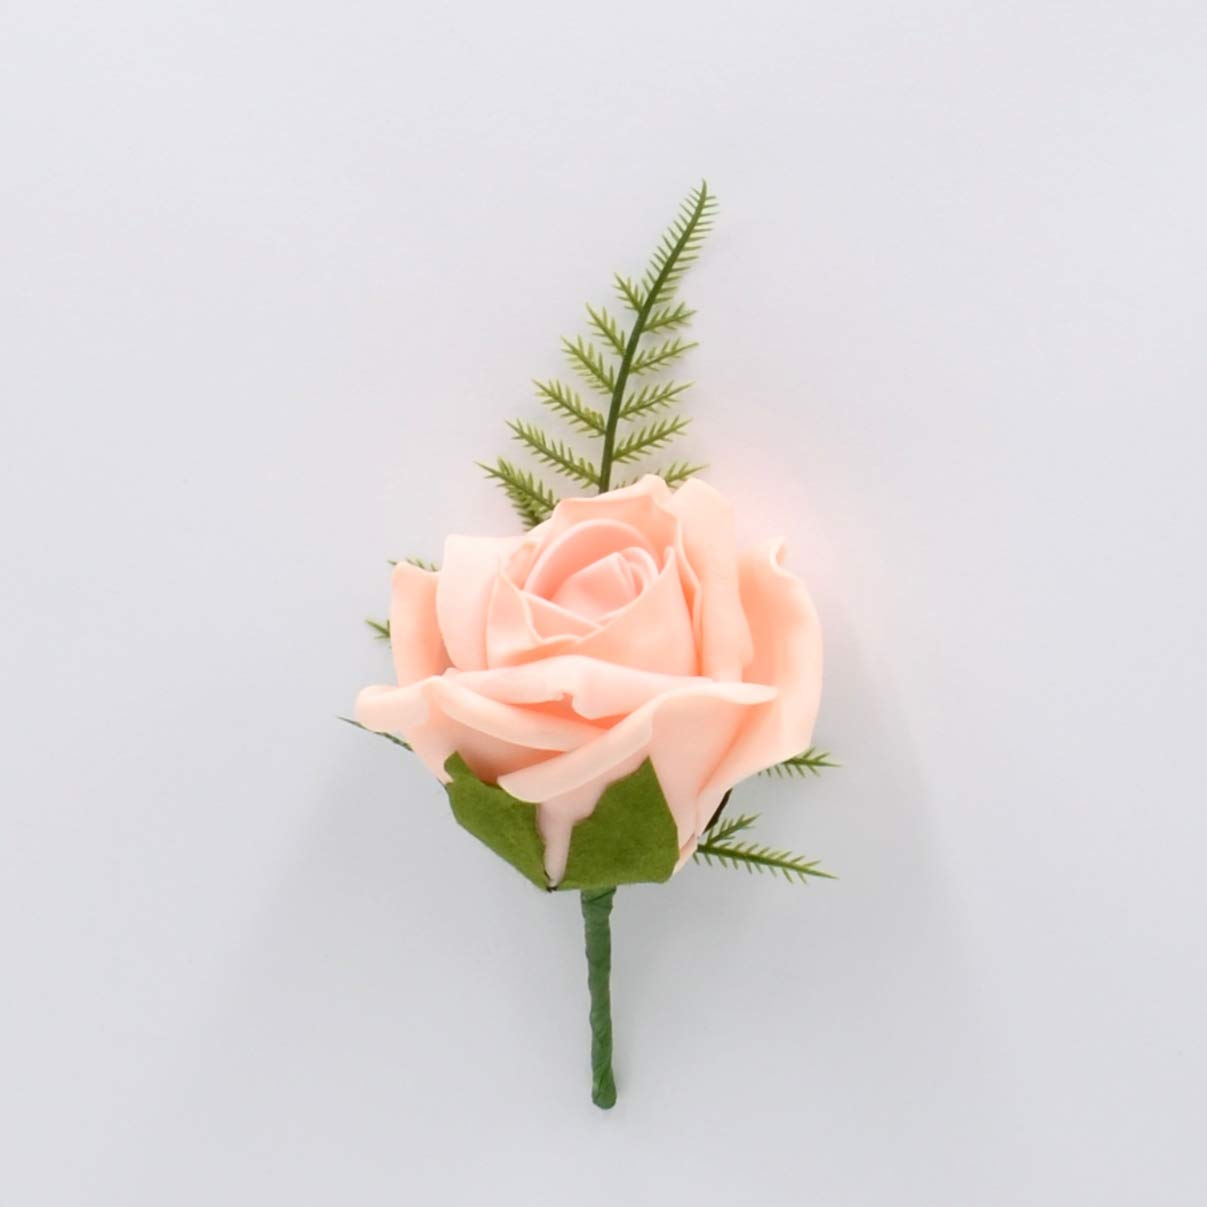 Artificial Wedding Flowers Hand-Made by Petals Polly, Foam Rose Buttonhole in Peach PETALS POLLY FLOWERS